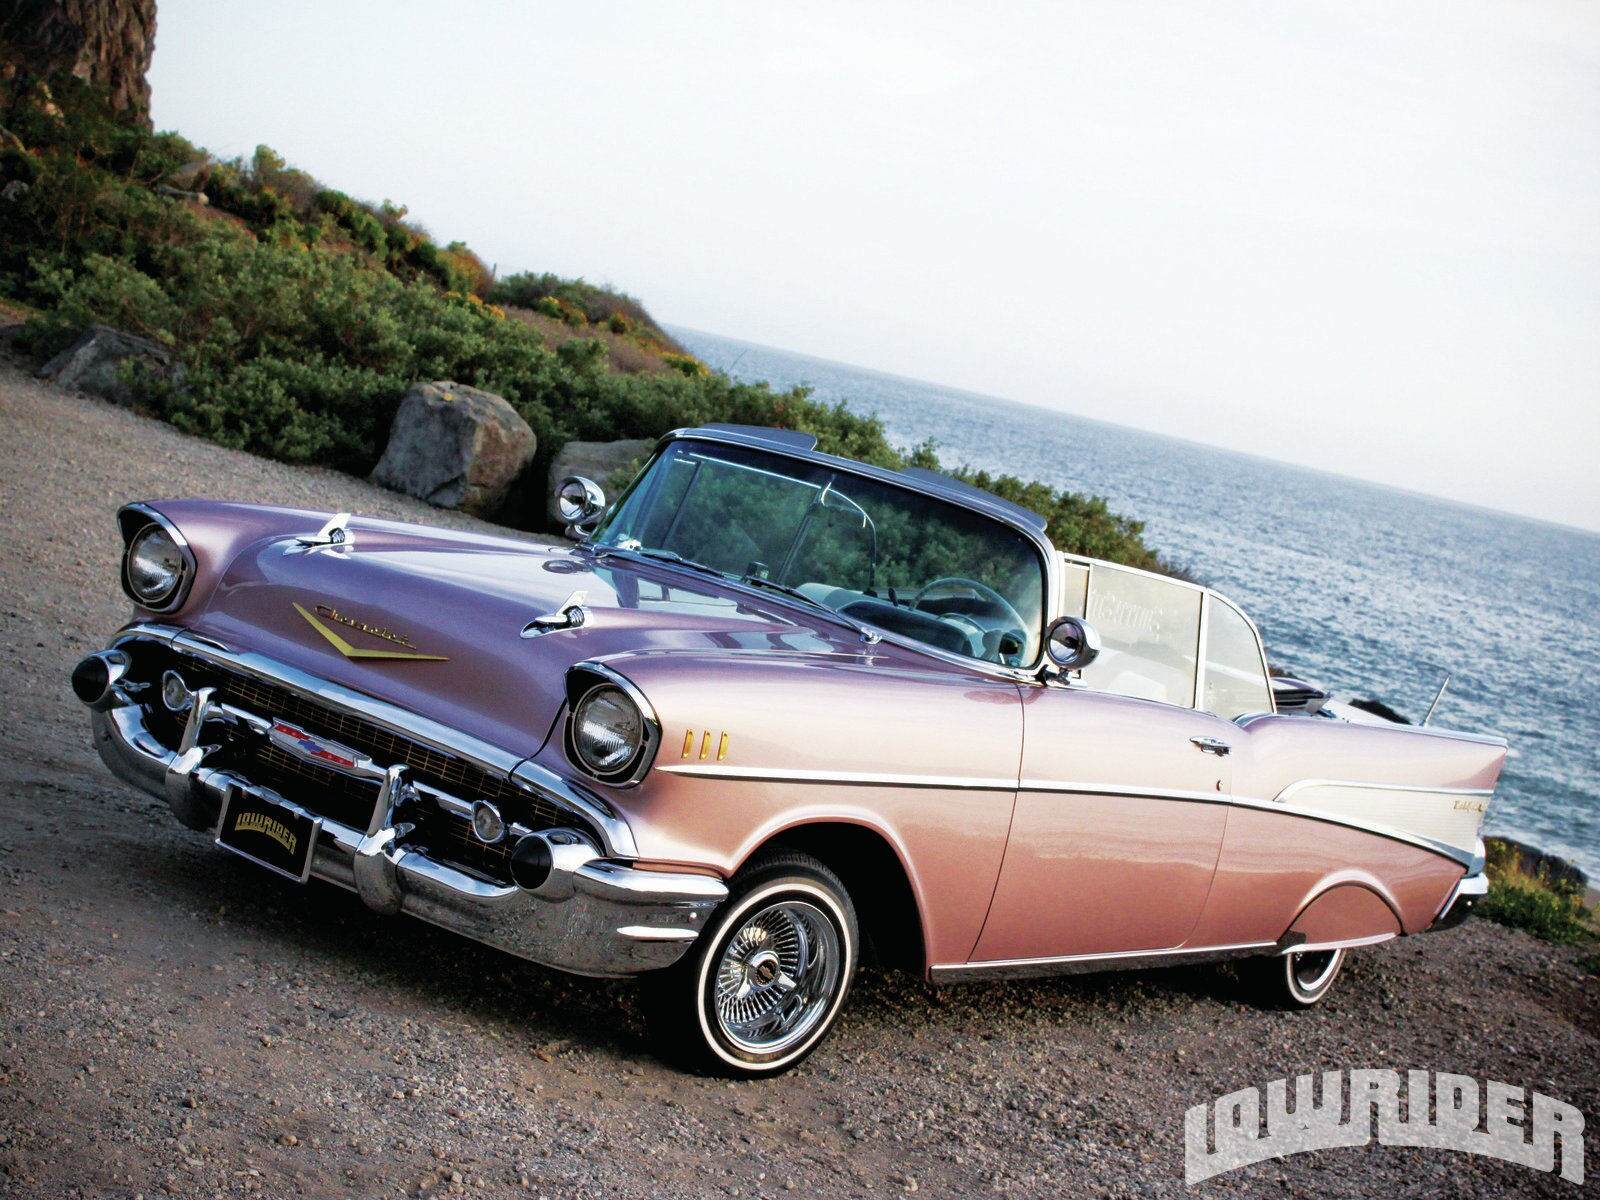 lrmp-1108-01-z-1957-chevrolet-bel-air-convertible-front-view1